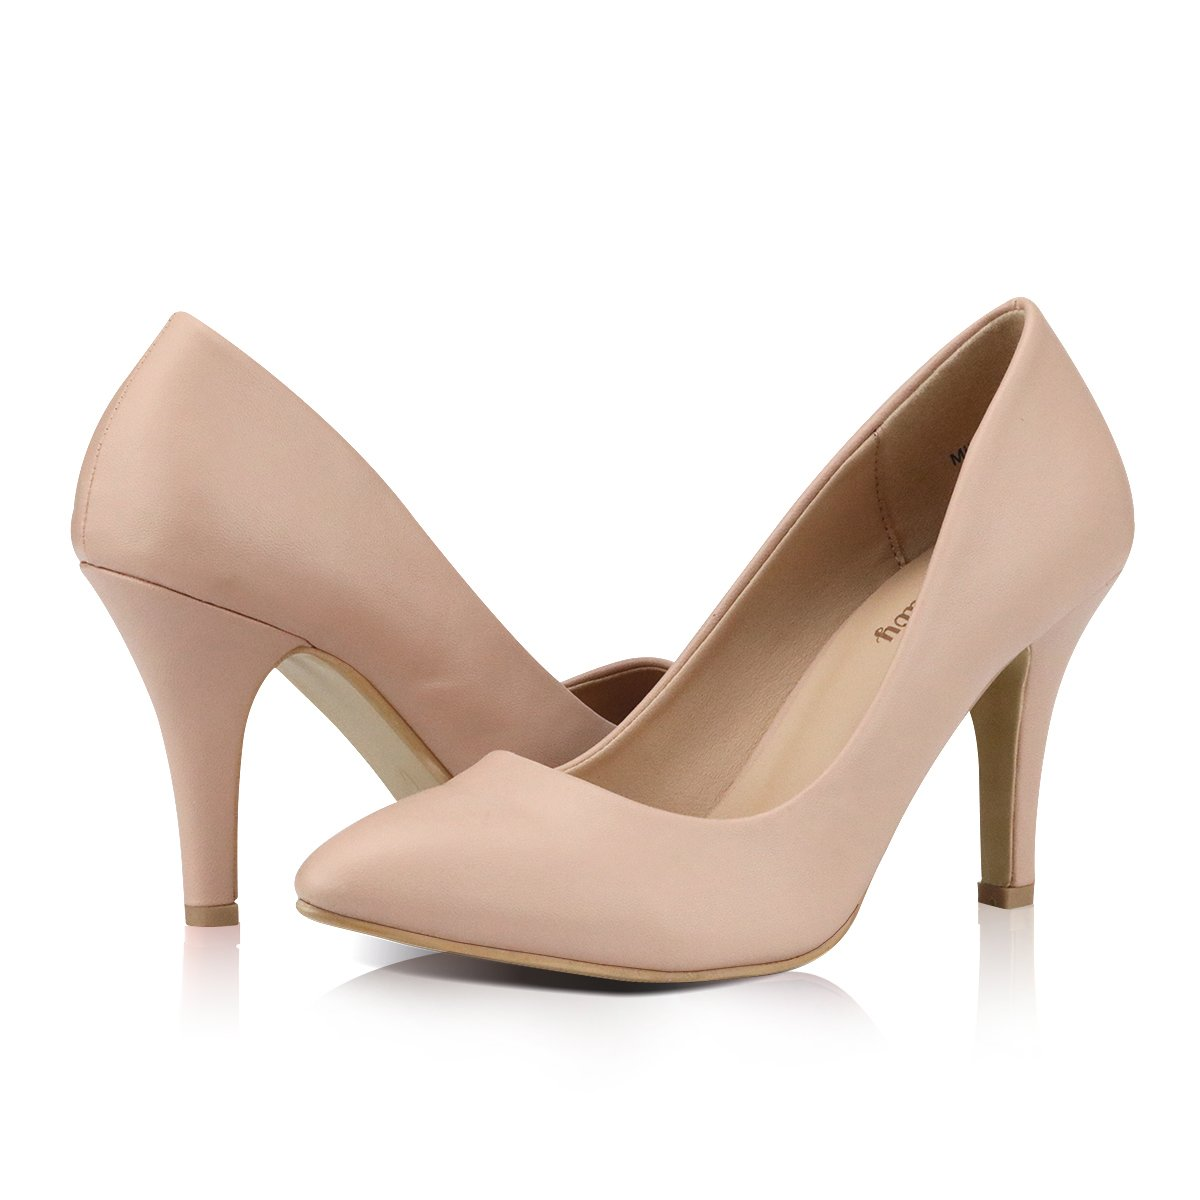 Yeviavy High Heels - Women's Pumps Stiletto Pointy Toed Dress Fashion Shoes JennaN Beige PU 7.5